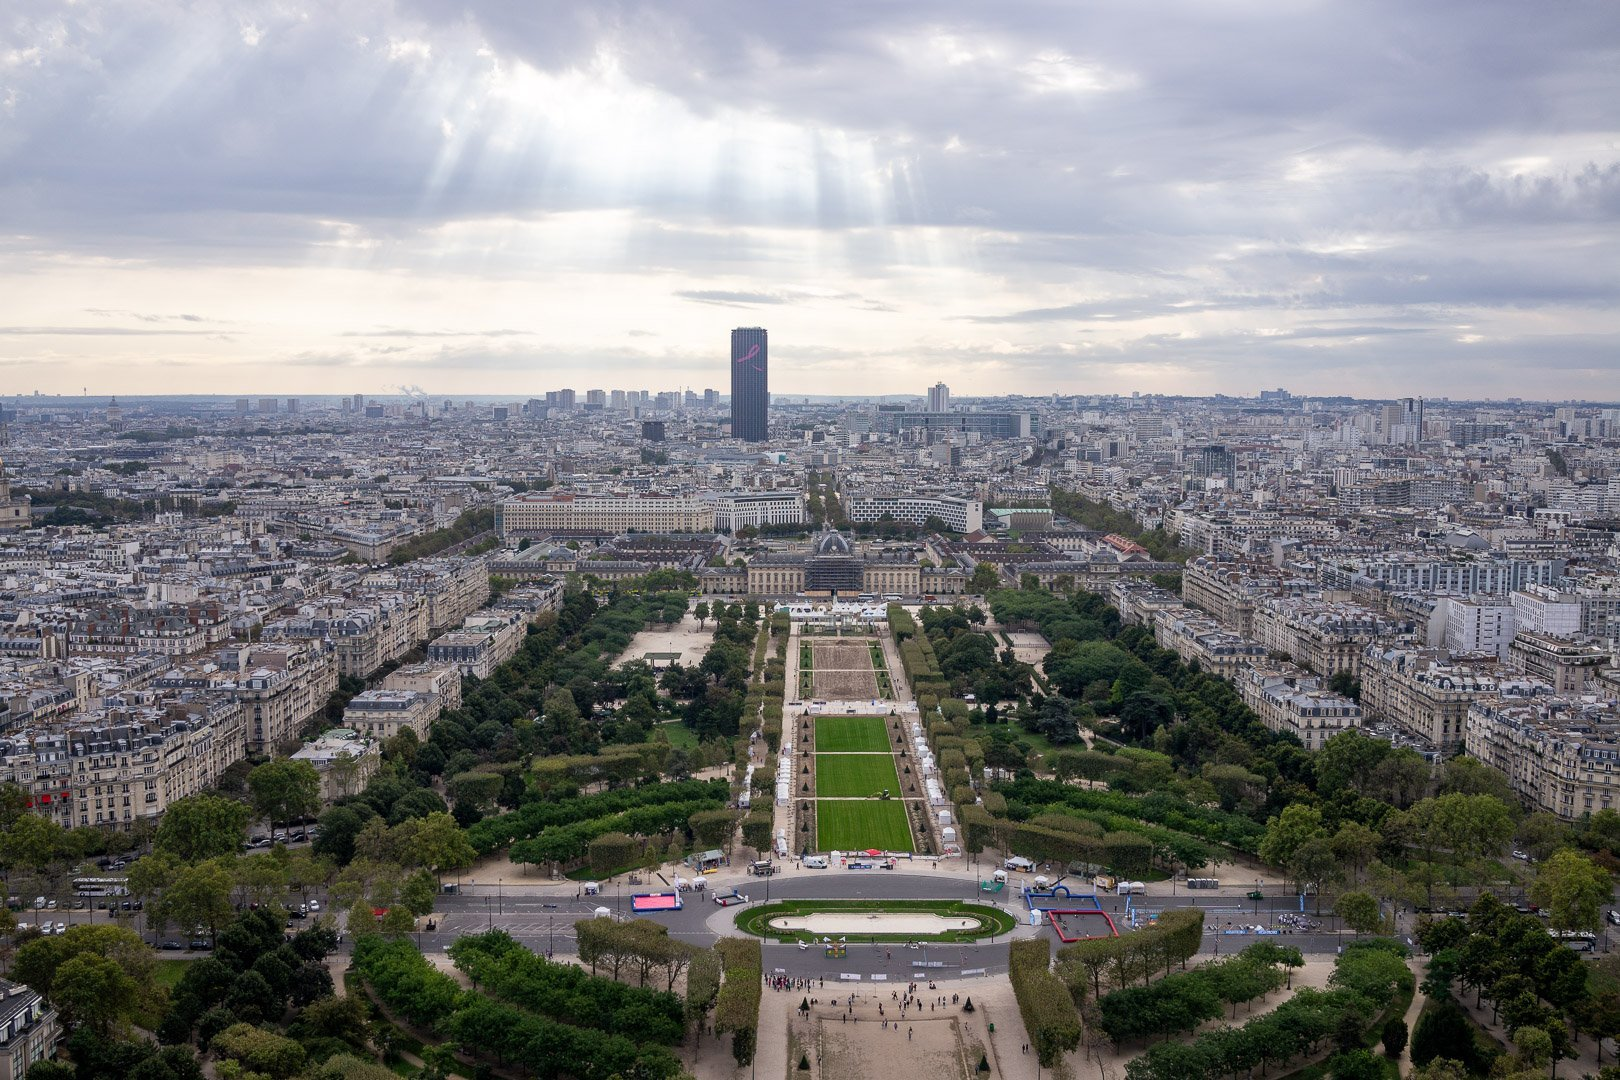 View of the Champ de Mars from one of the observation decks at the Eiffel Tower